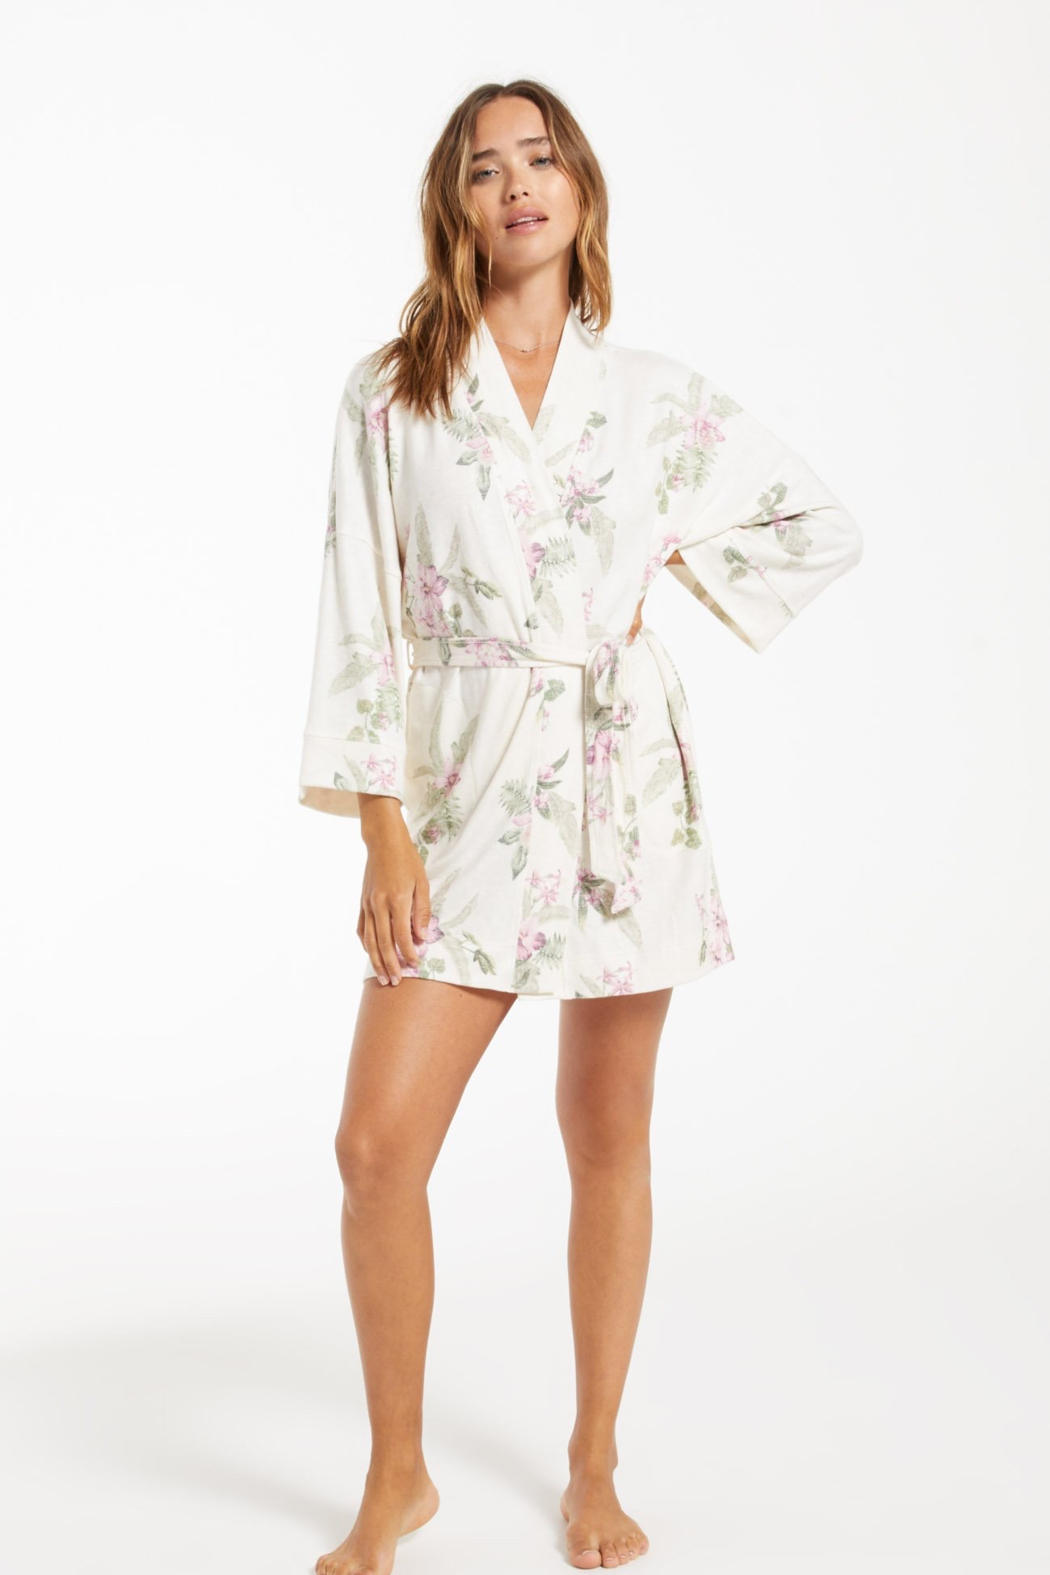 z supply Vacay Floral Robe - Front Full Image